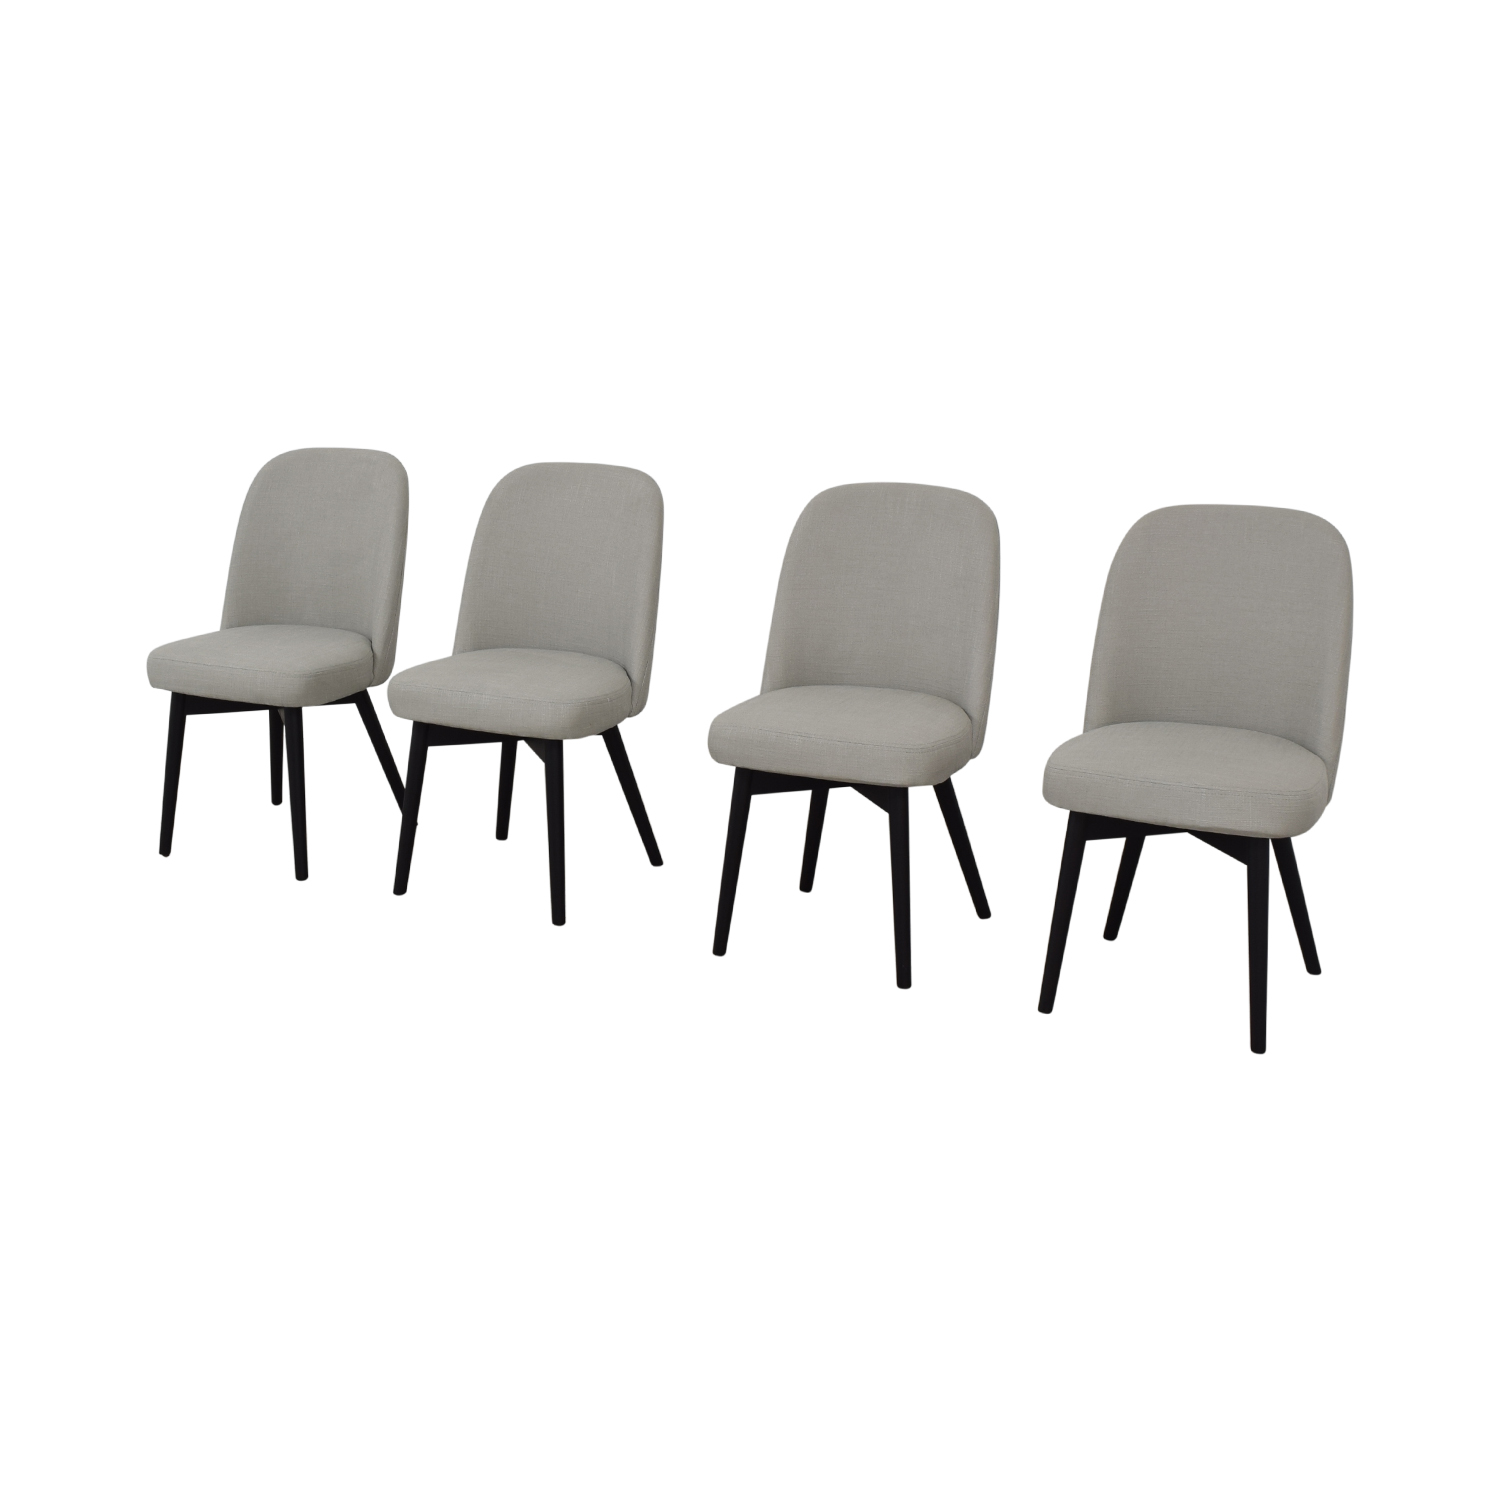 Interior Define Dylan Grey Dining Chairs for sale